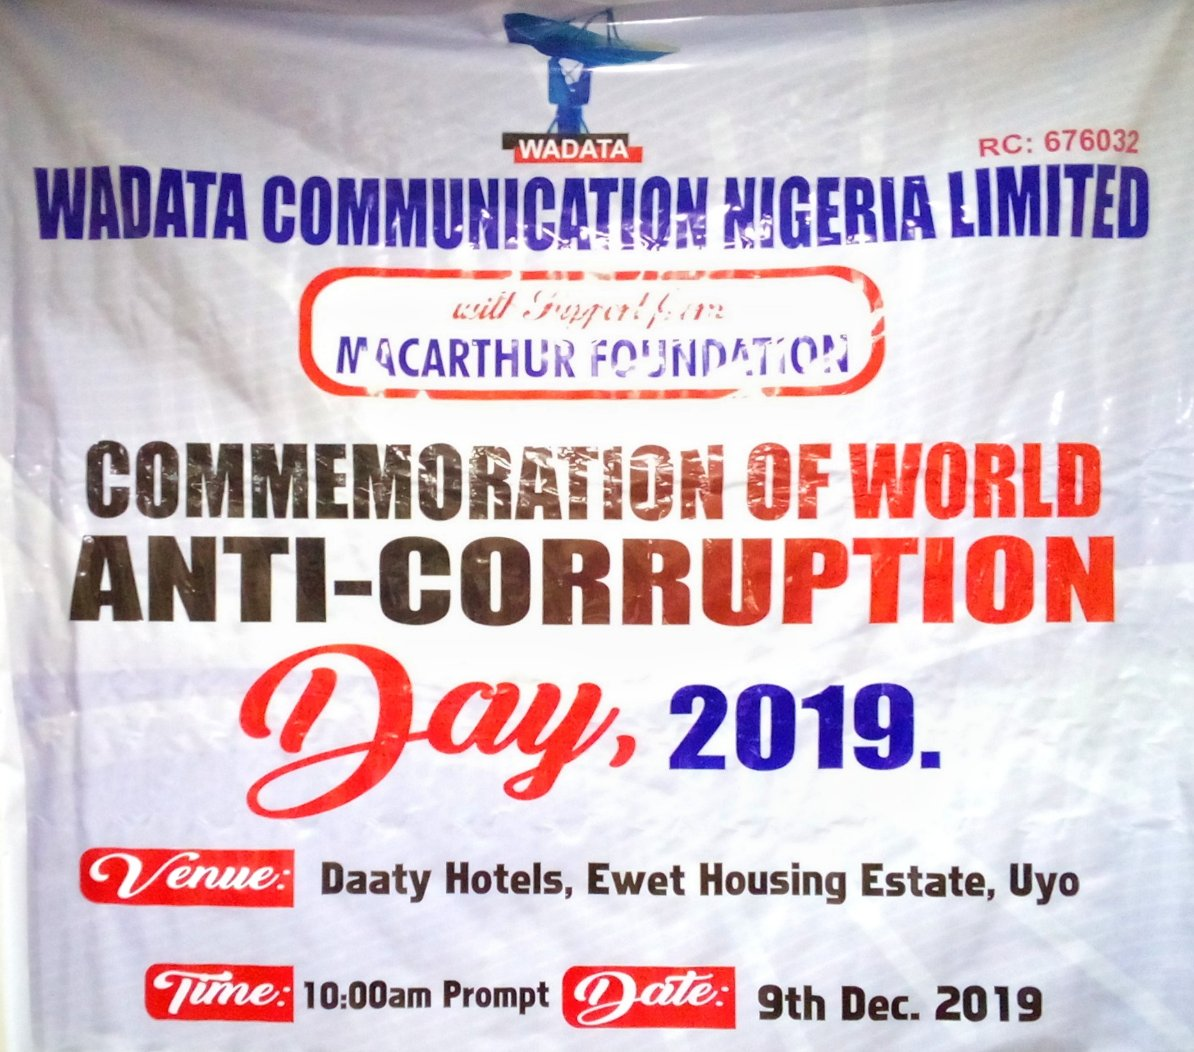 Today Is World Anti Corruption day, 2019 and @macfound in conjunction with @wadatacom is having an Idea Sharing Summit in Uyo on how to #ExpelCourruption on a Unified front. Join the conversation at Datty Hotels and Suites at Ewet Housing estate Uyo, Akwa Ibom state by 8Am